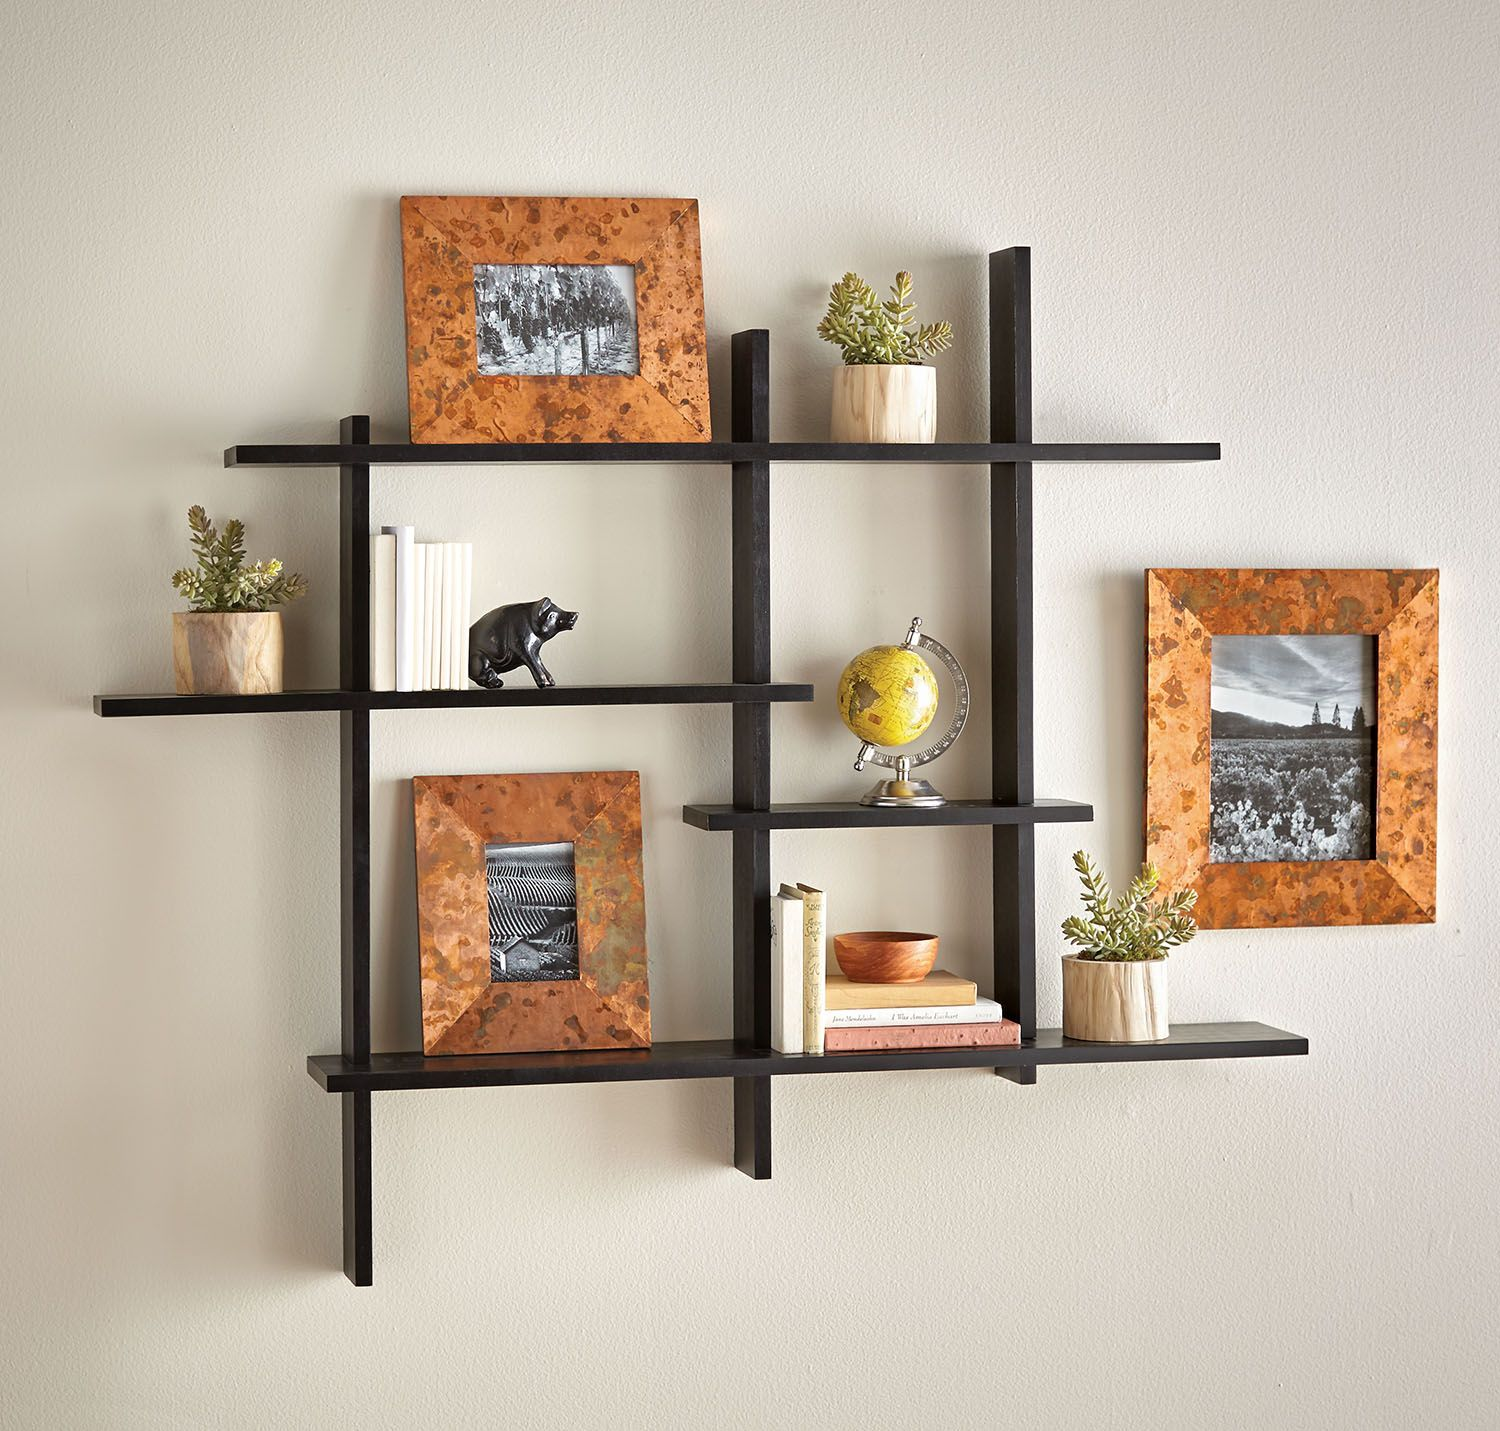 Show Off Your Favorite Things And Organize The Nicknacks You Own On Simple Display Shelves Organizewithhdc